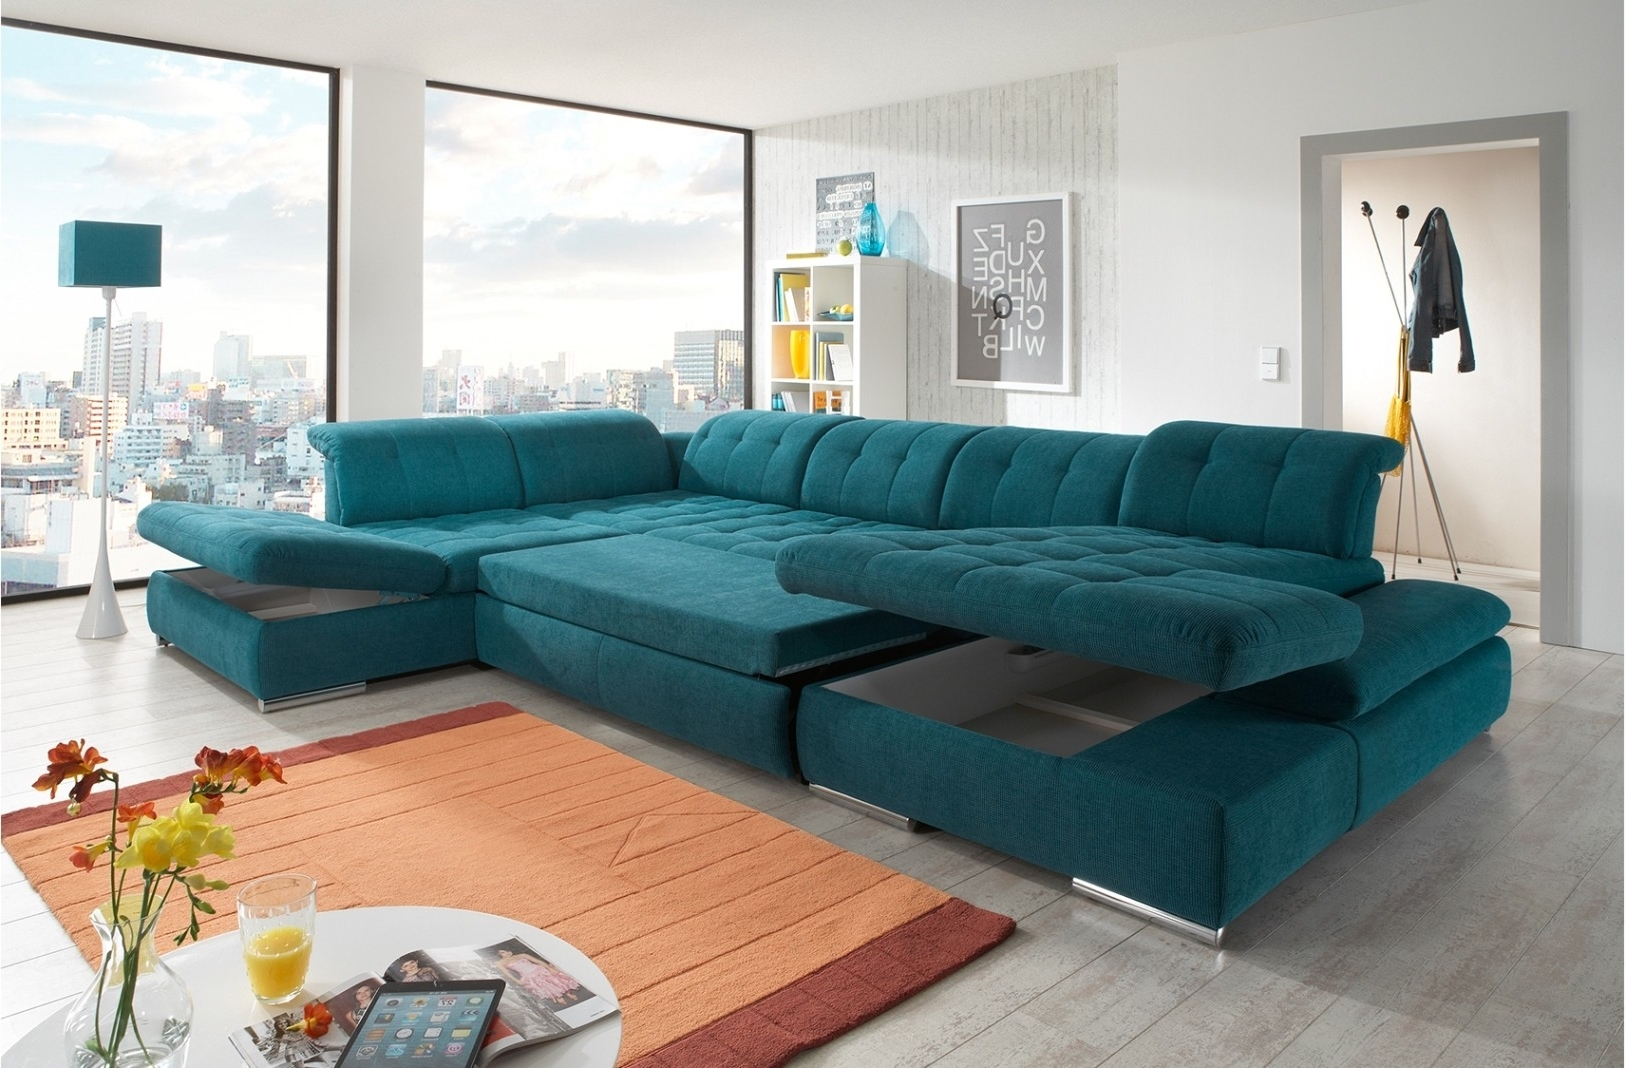 Trinidad And Tobago Sectional Sofas With Most Up To Date Alpine Sectional Sofa In Green Fabric (View 10 of 20)